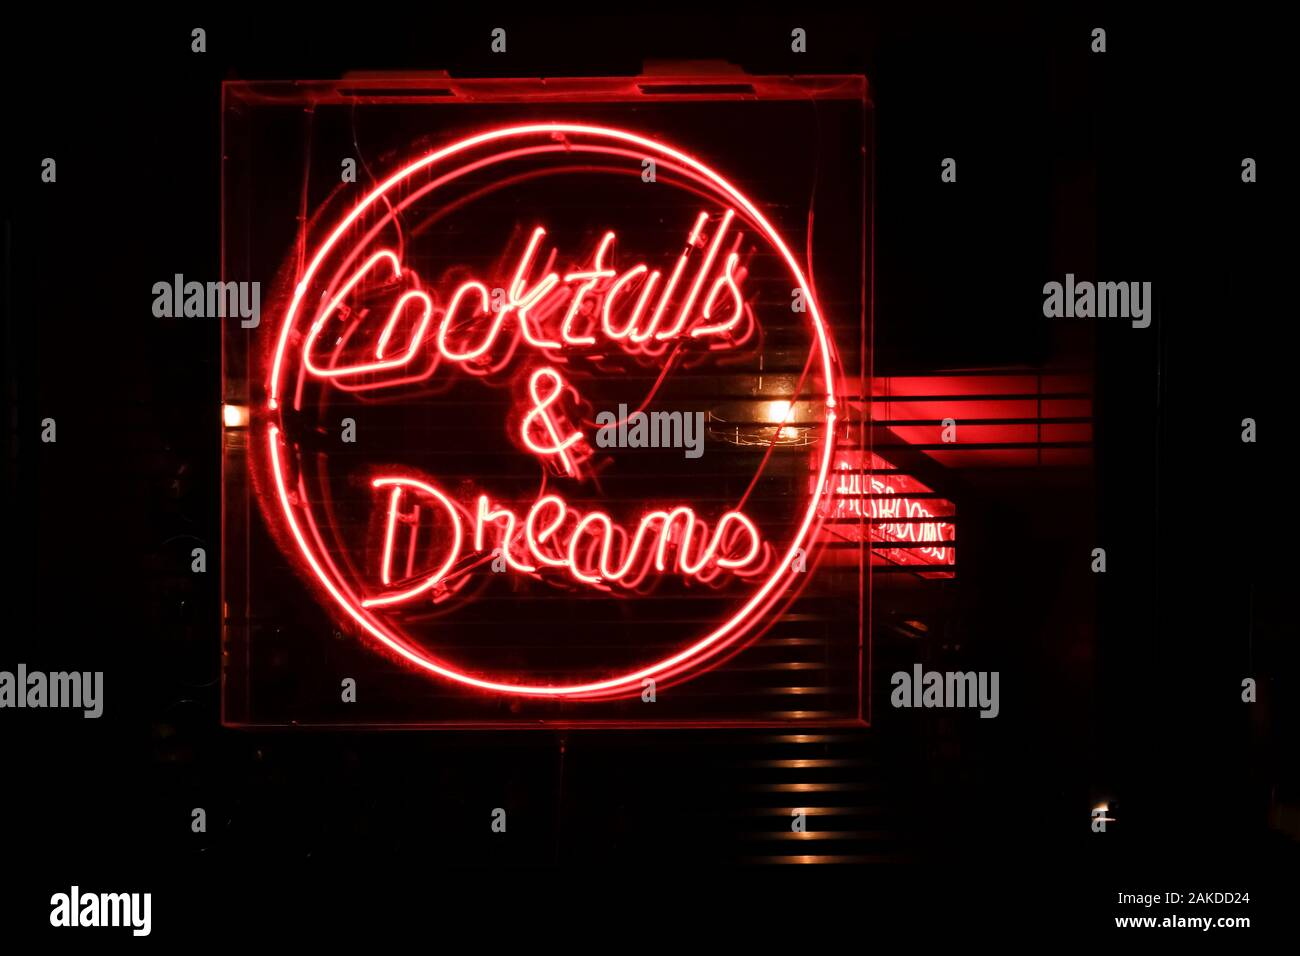 neon-sign-in-the-window-of-a-liverpool-p